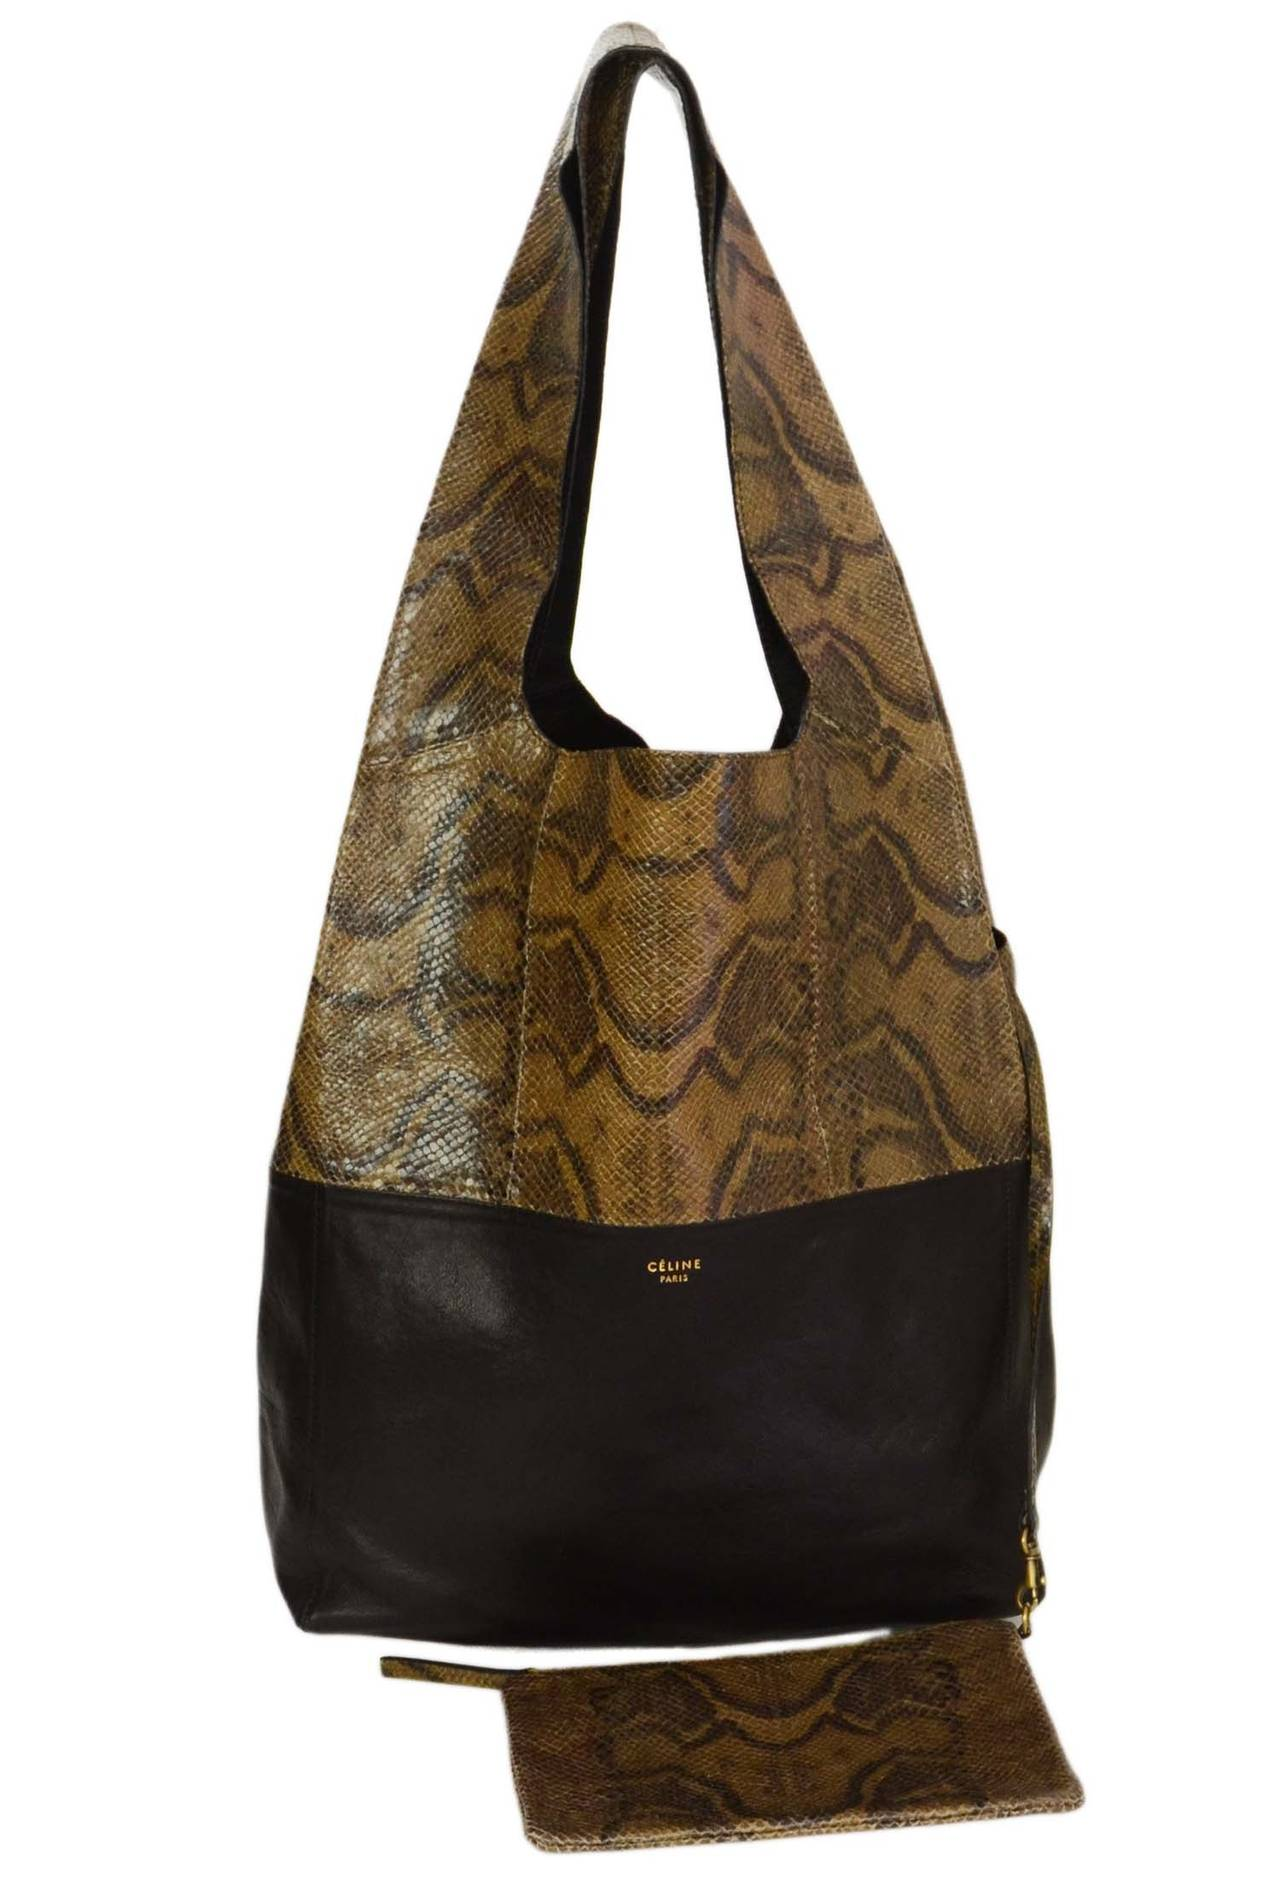 With its smooth leather body, slender shoulder straps and magnetic snap closure, this tote with tassel detailing is a commuting must-have. Unlined, these bags feature a contrast interior and built-in zipper pocket complete with RFID-protected card slots.